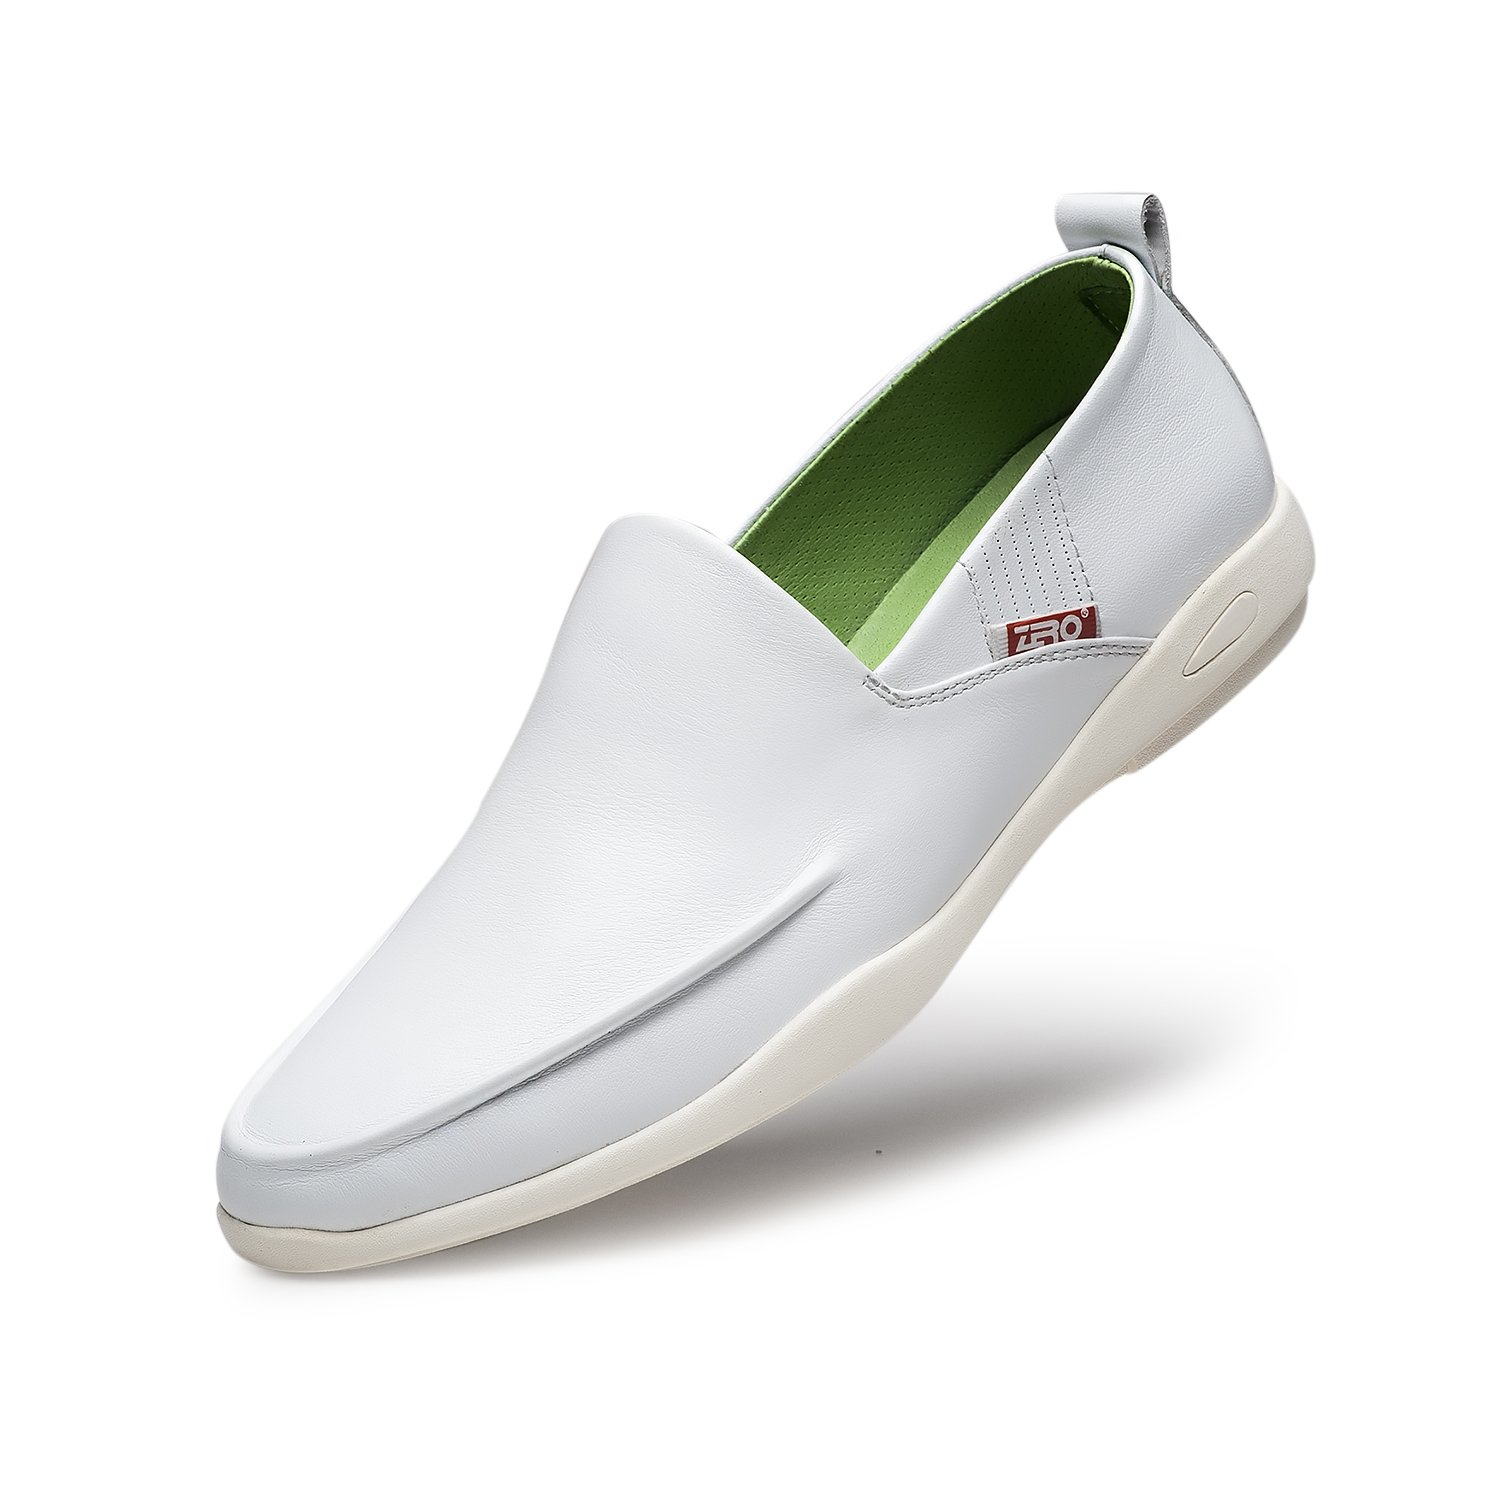 ZRO Men's White Genuine Leather Casual Dress Flats 10 M US